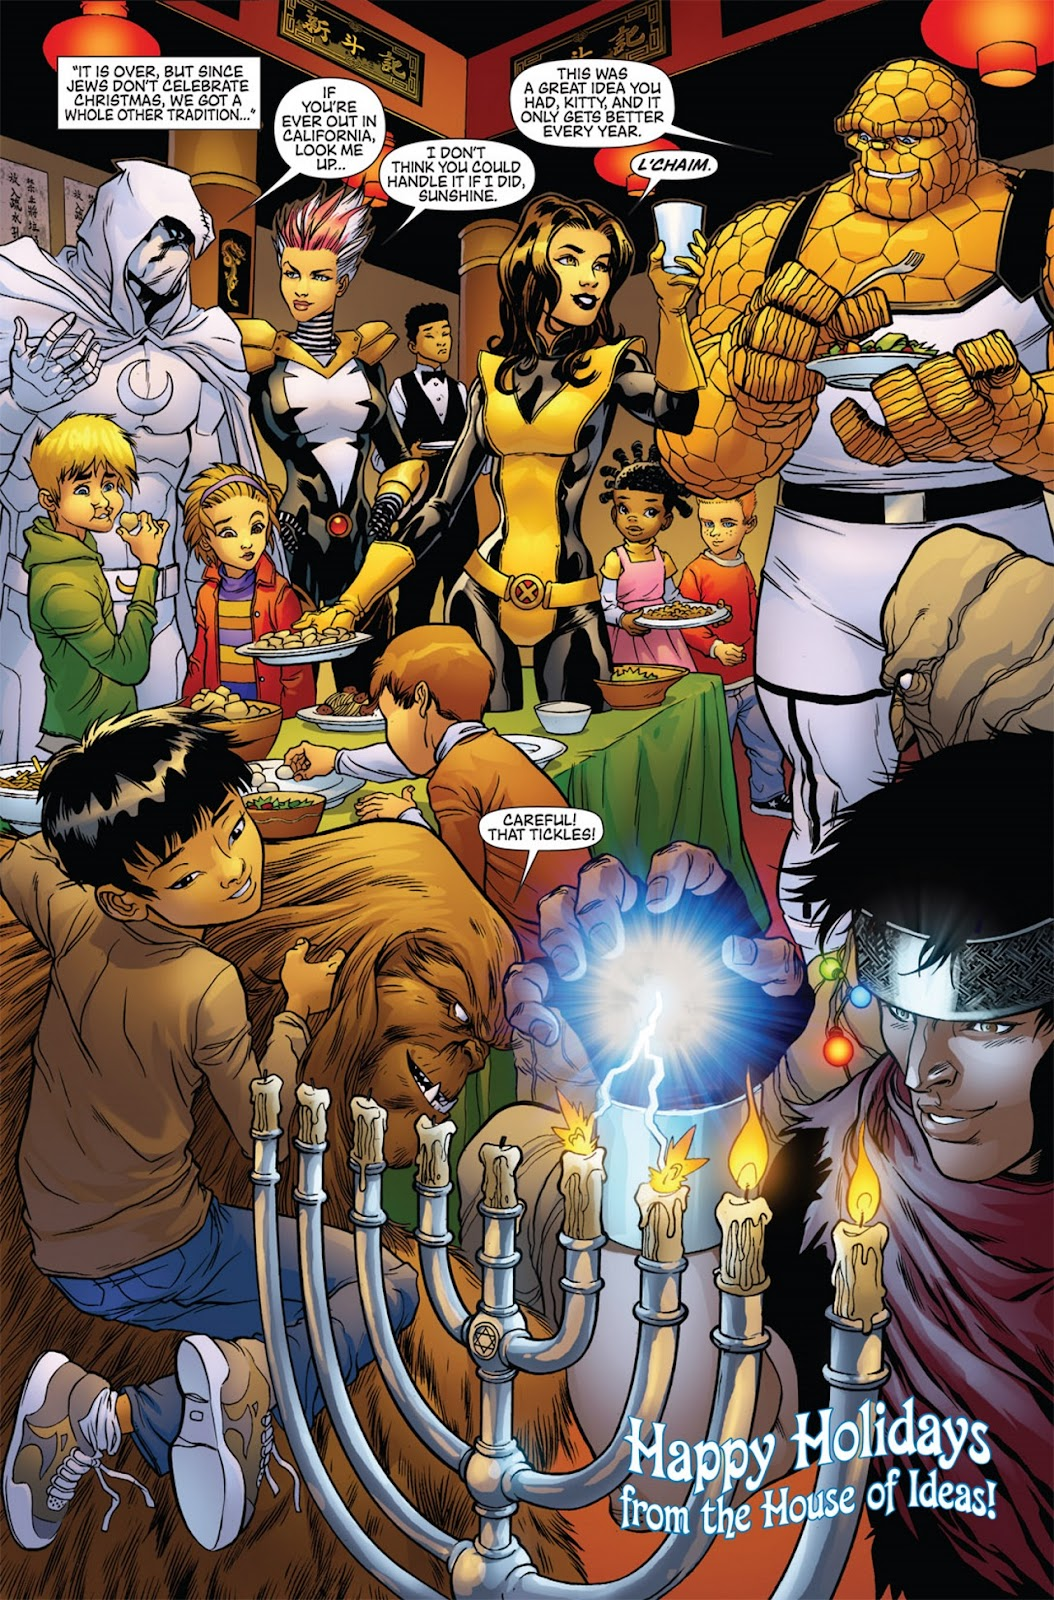 Do Jews Celebrate Christmas.What Jews Do At Christmas Marvel Holiday Special 2011